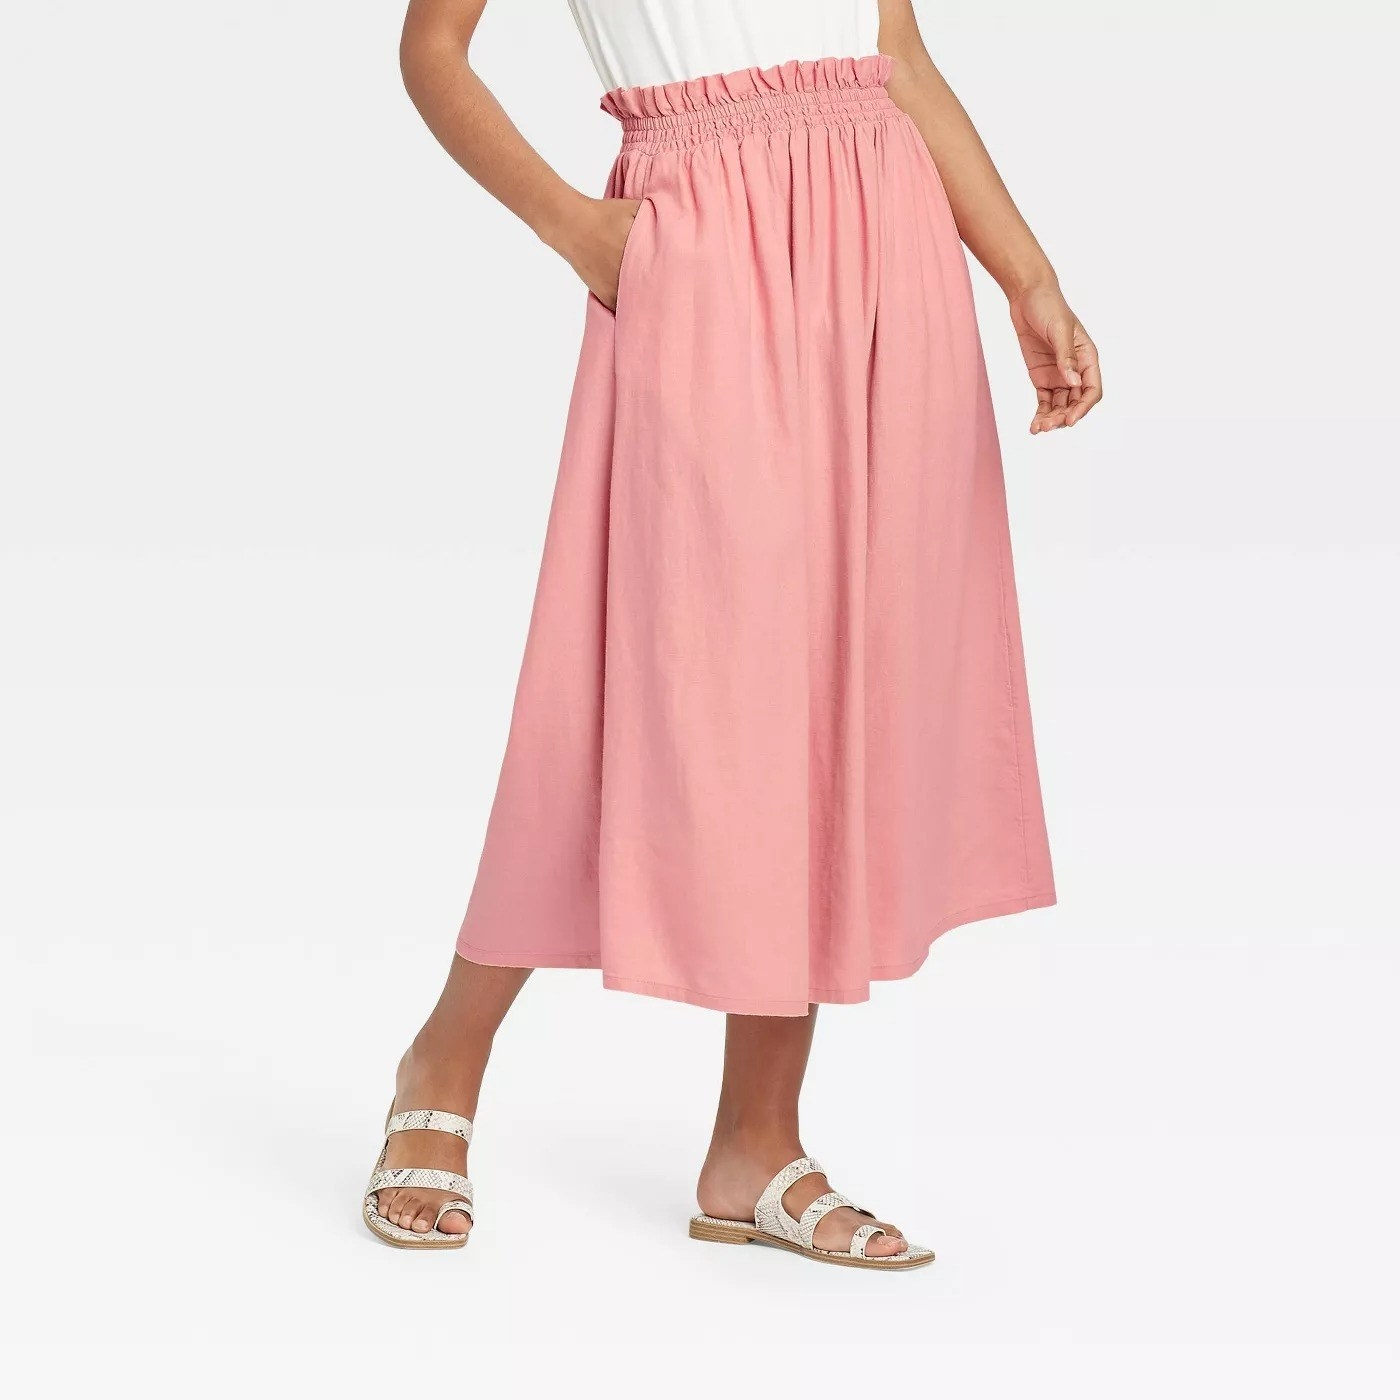 Model wearing pink maxi skirt with elastic waistband, stops above the ankle